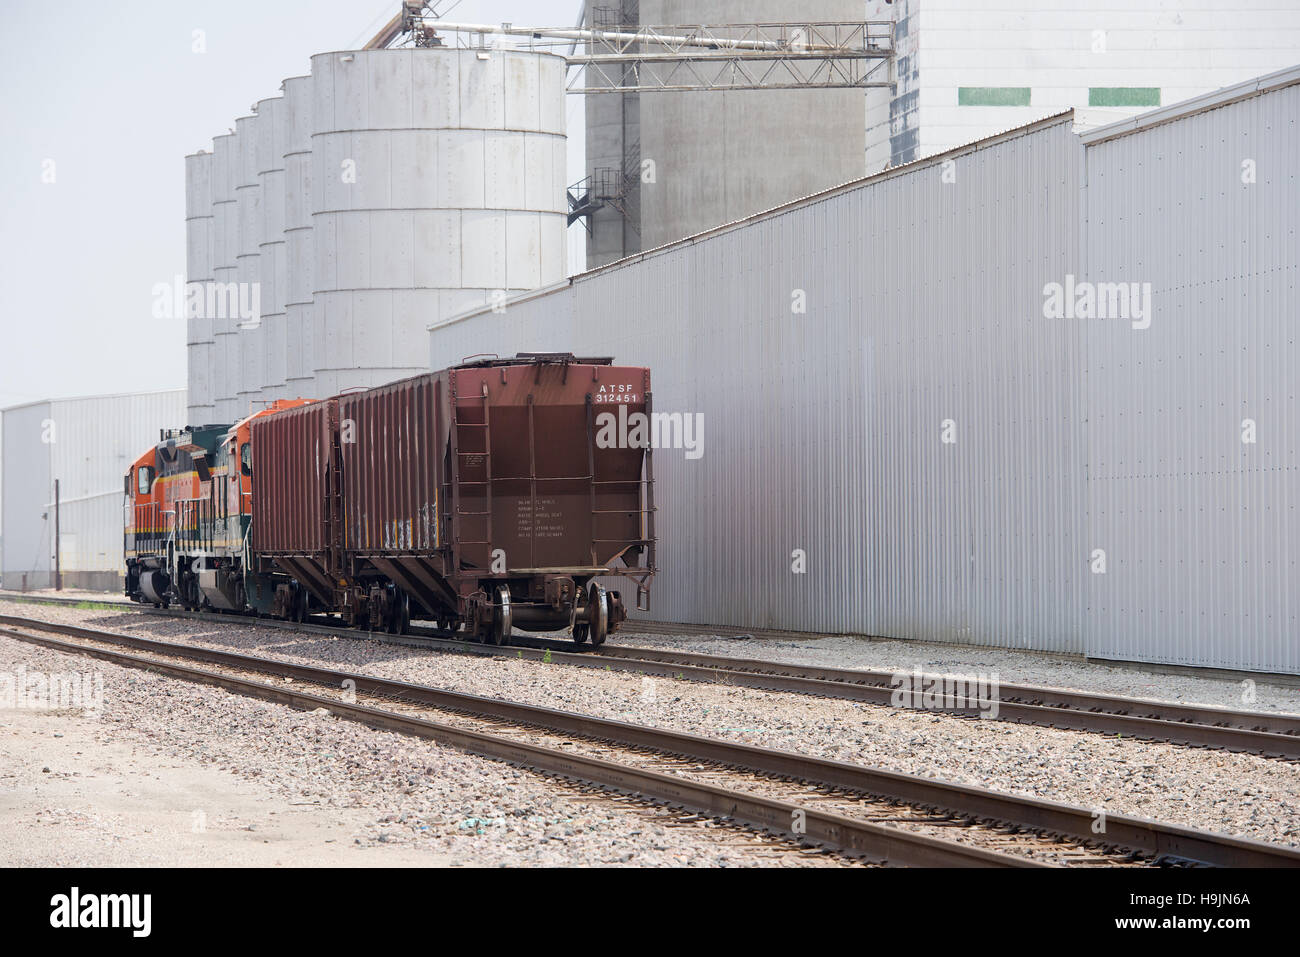 Grain Silos And Storage Facilities With Freight Cars At Fremont, Nebraska,  USA.